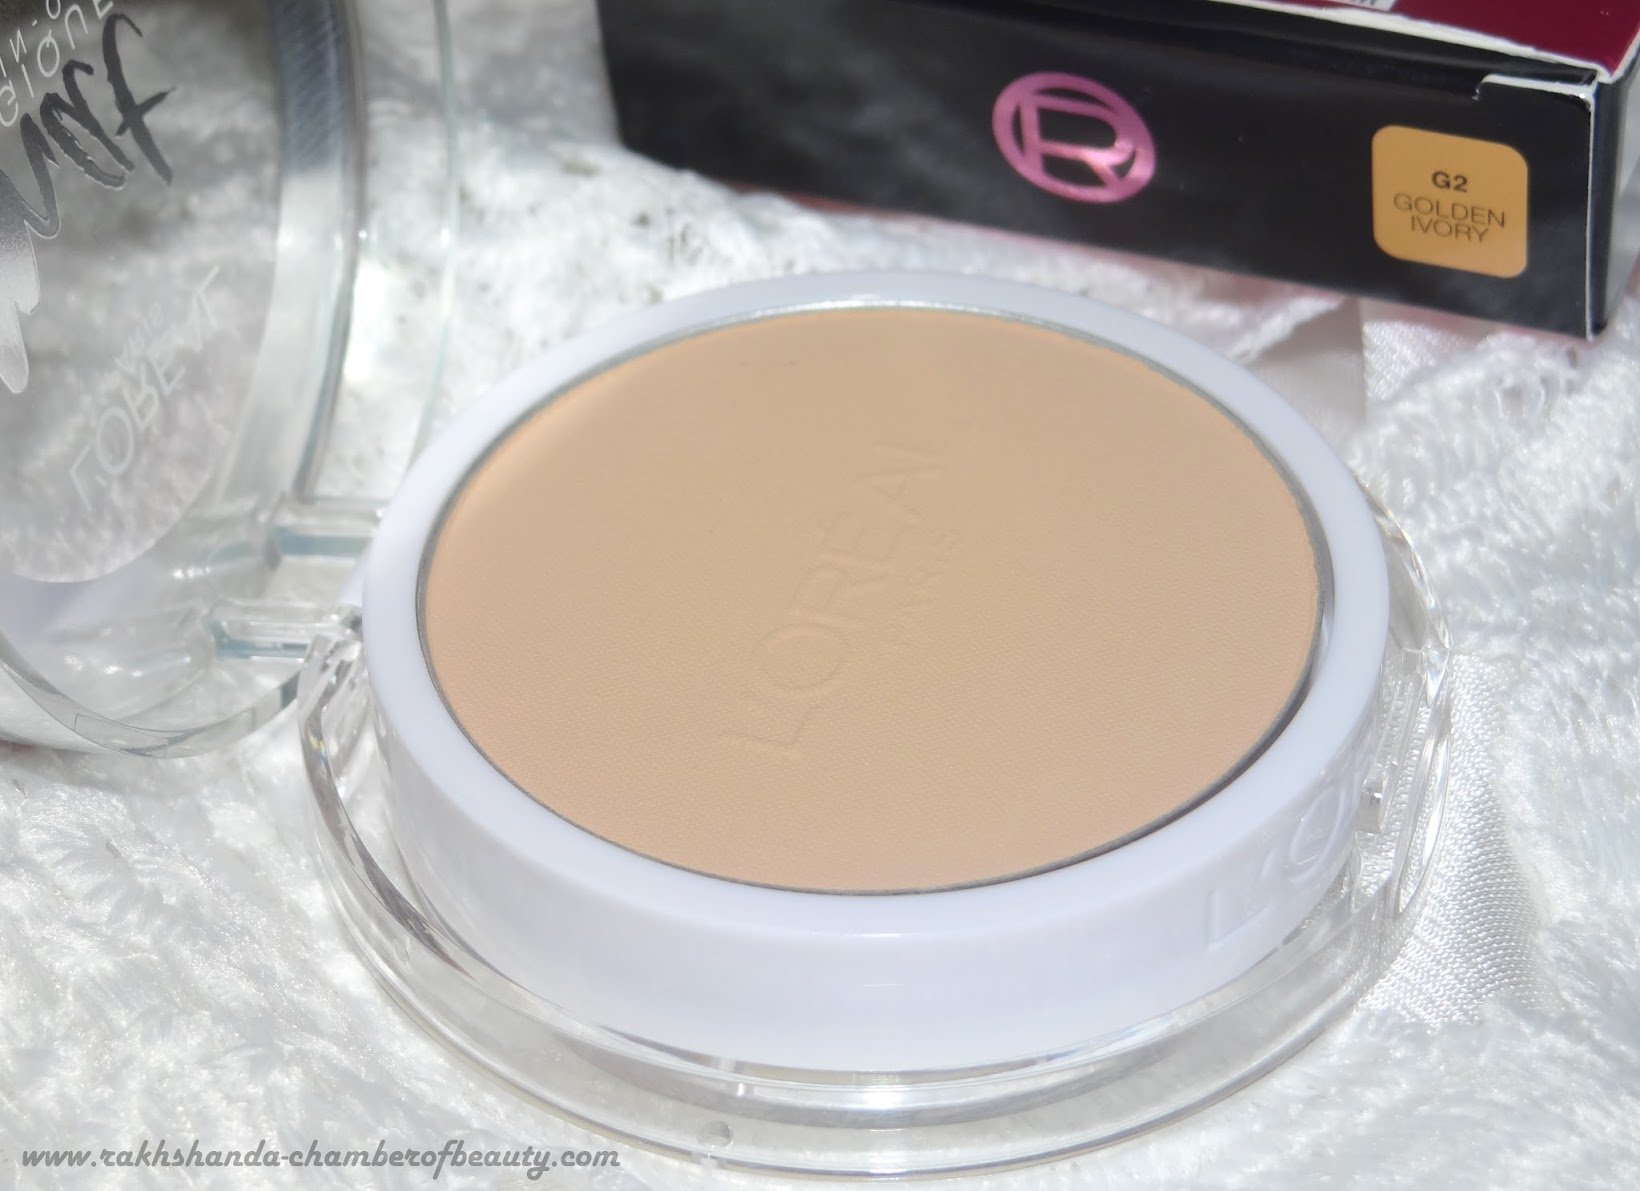 L'Oreal Mat Magique All-in-one Transforming Powder- First look and Swatches | Budget Beauty Buy in India, Indian beauty blogger, Chamber of Beauty